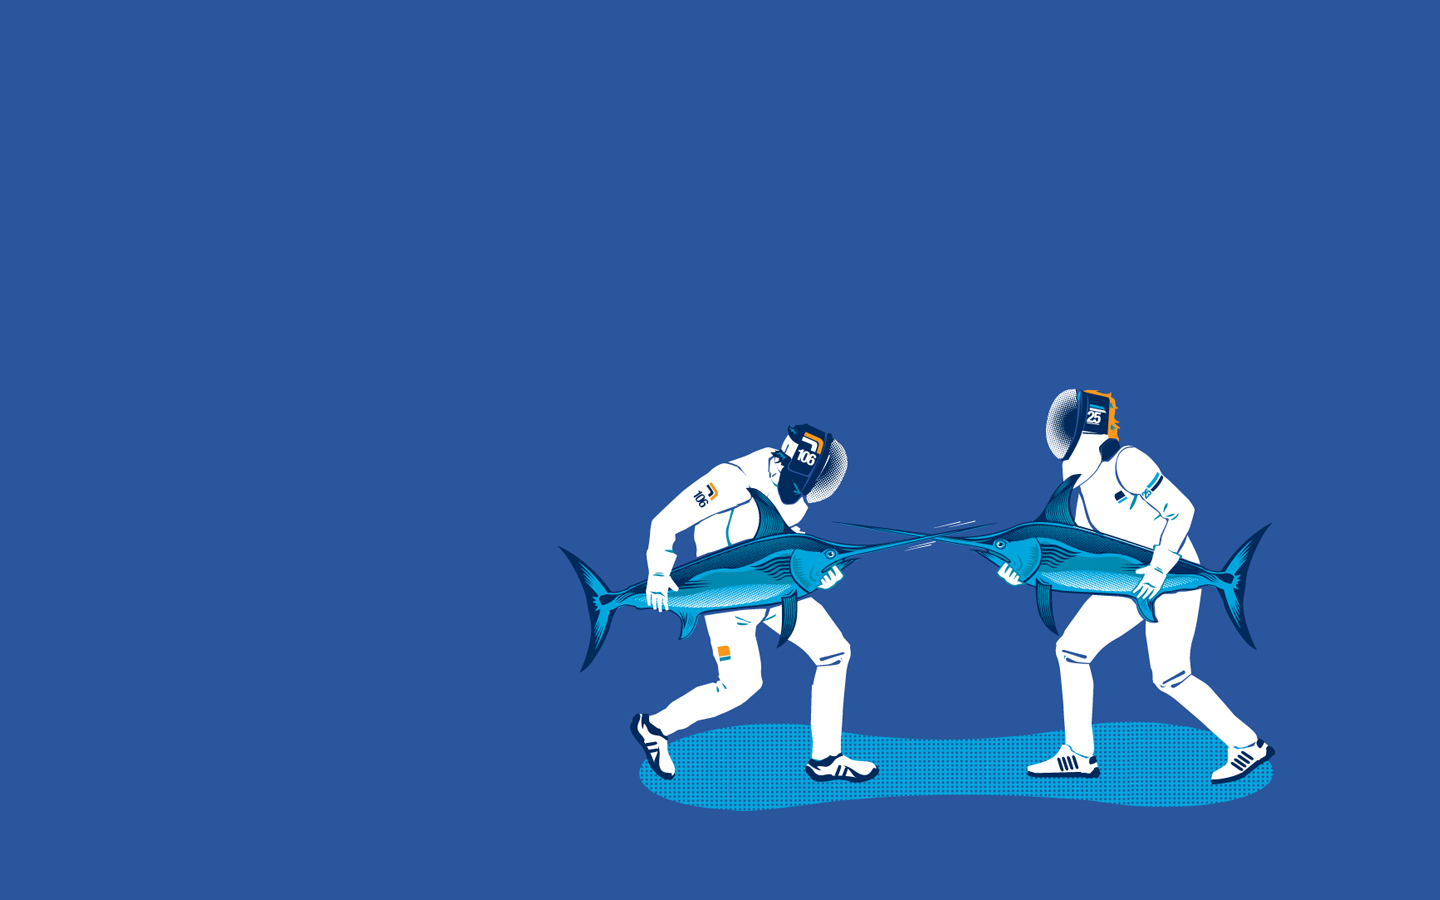 1440x900 - Fencing Wallpapers 15